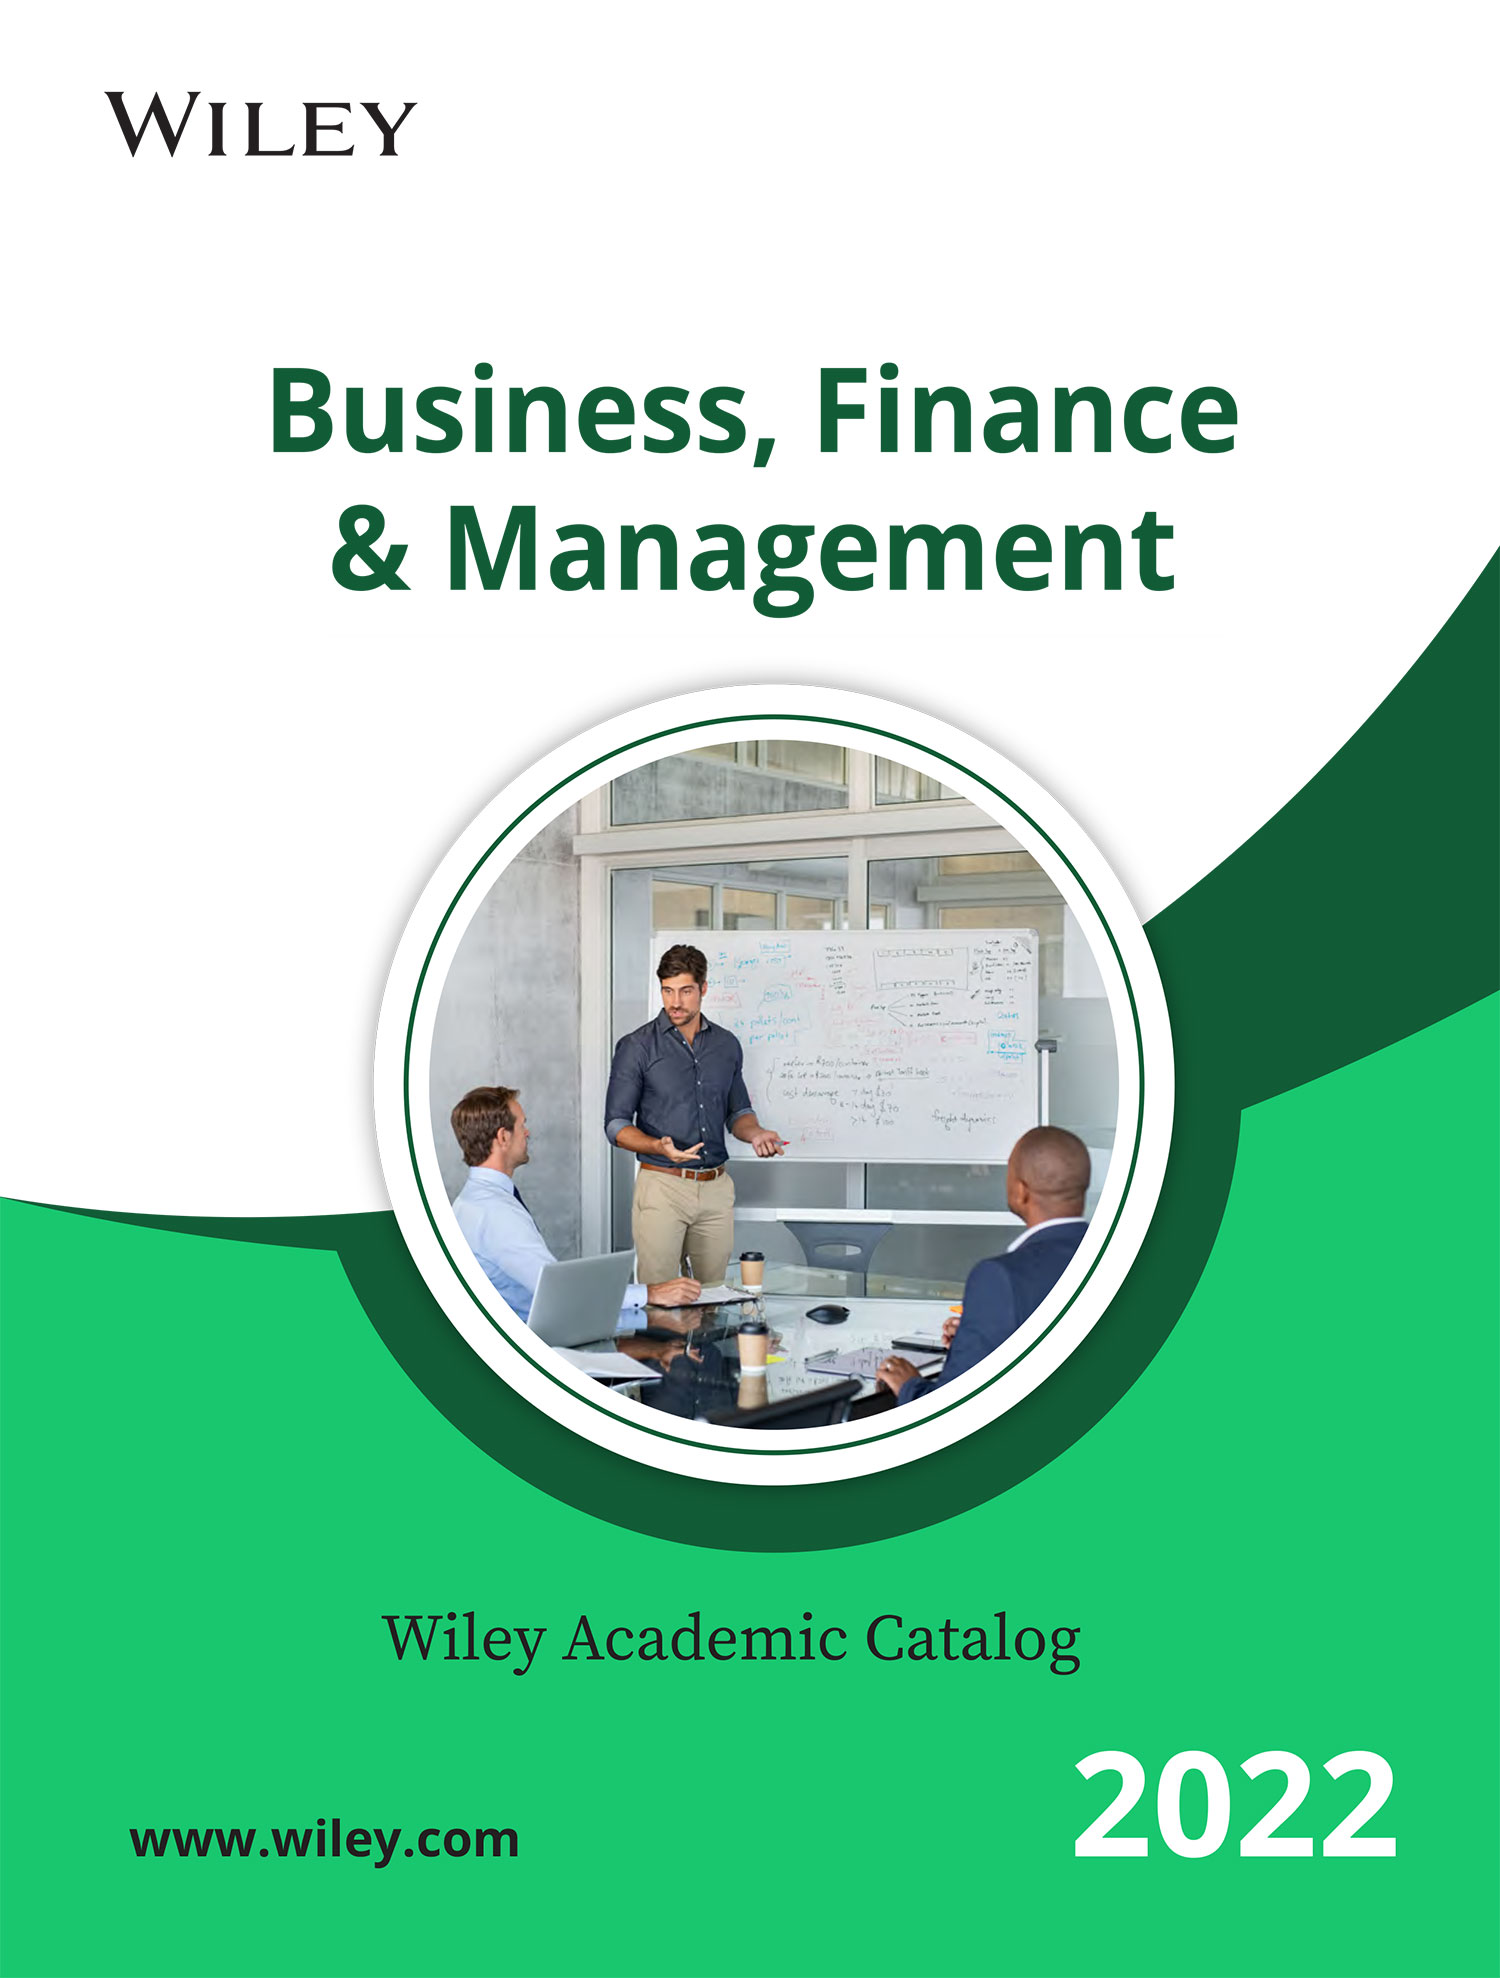 Wiley Business Finance & Management Catalog 2021